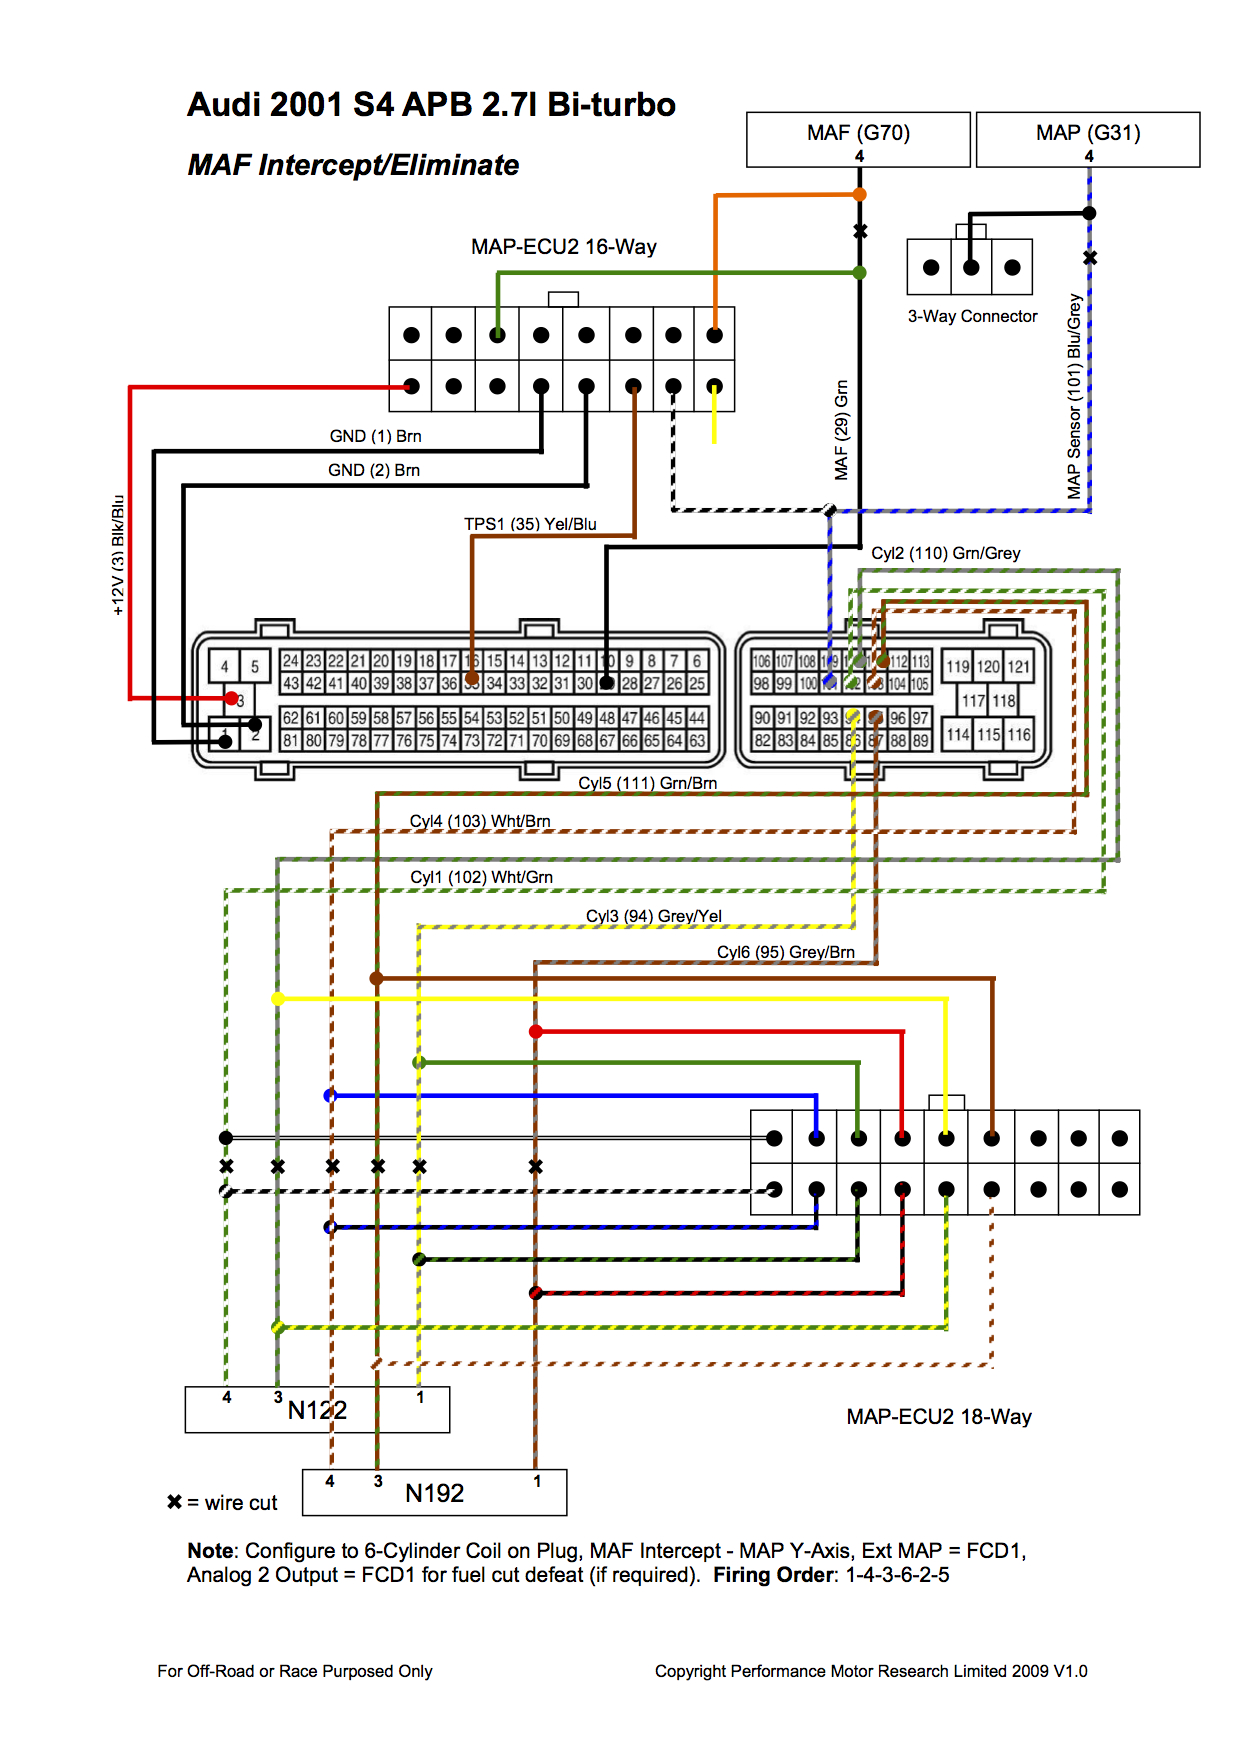 Audi S4 20011 nissan 350z wiring diagram wiring diagram simonand 300zx wiring diagram at honlapkeszites.co